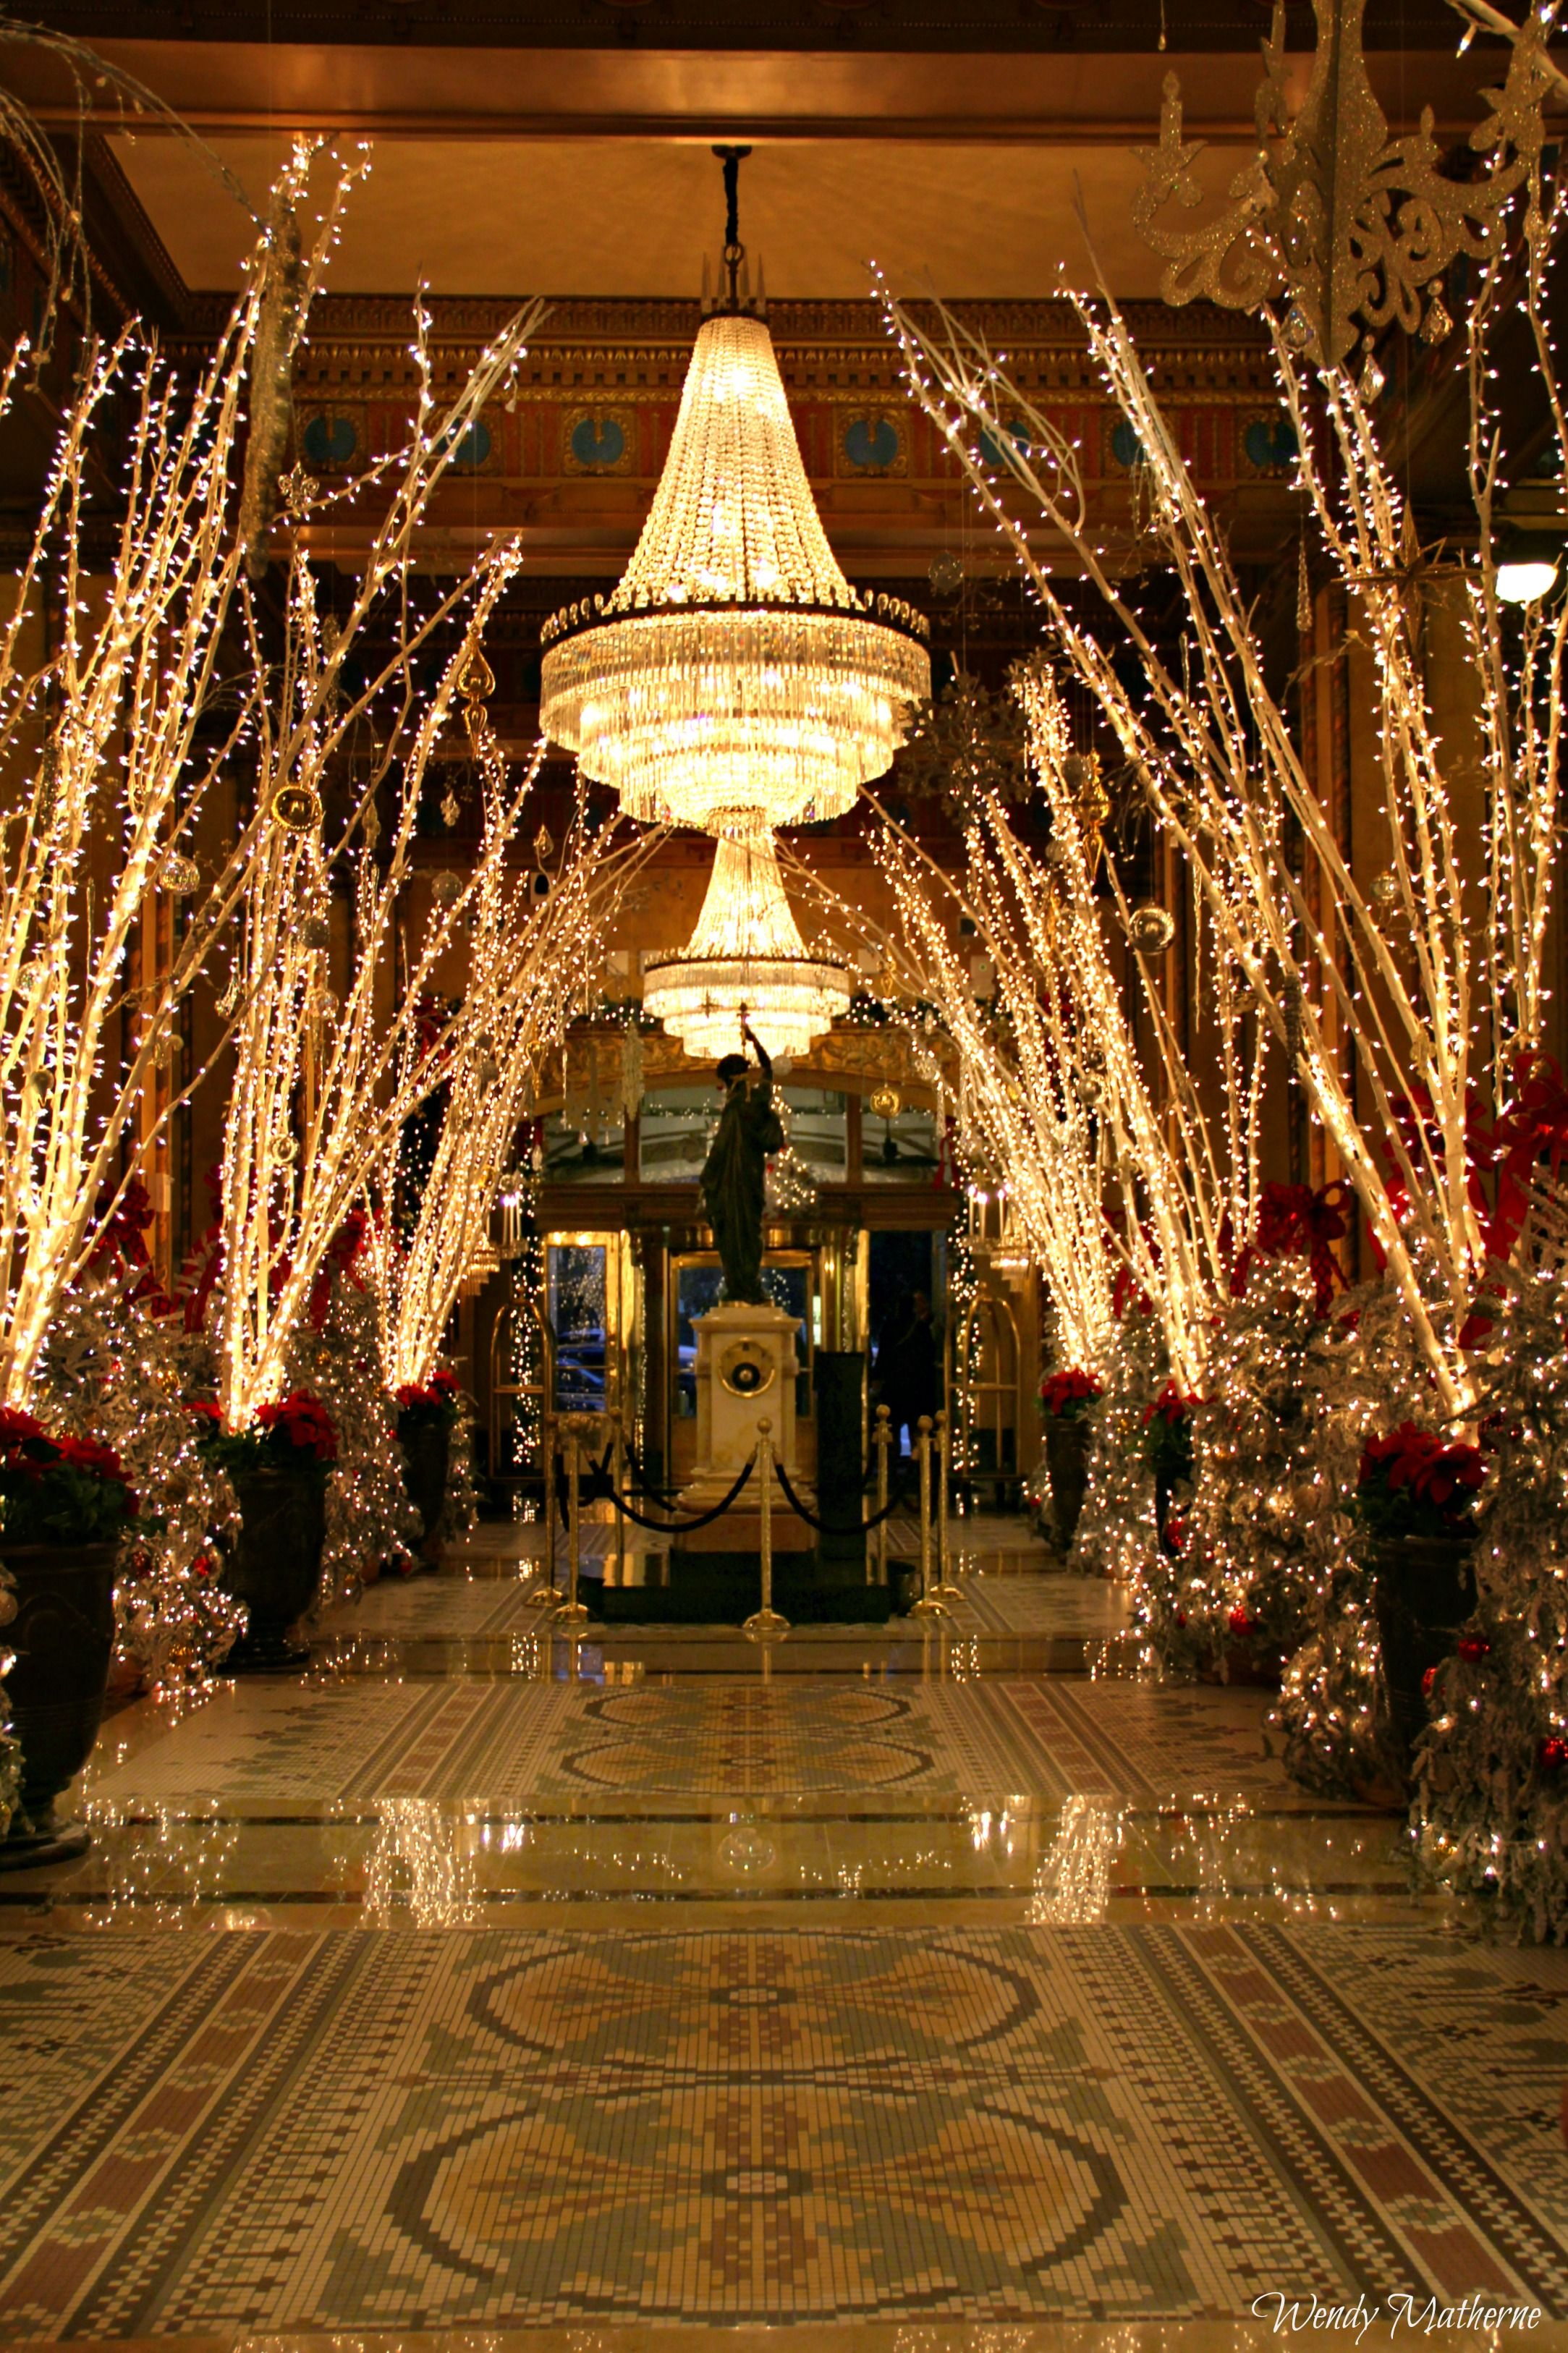 The Famed Roosevelt Hotel In New Orleans Decorated For The